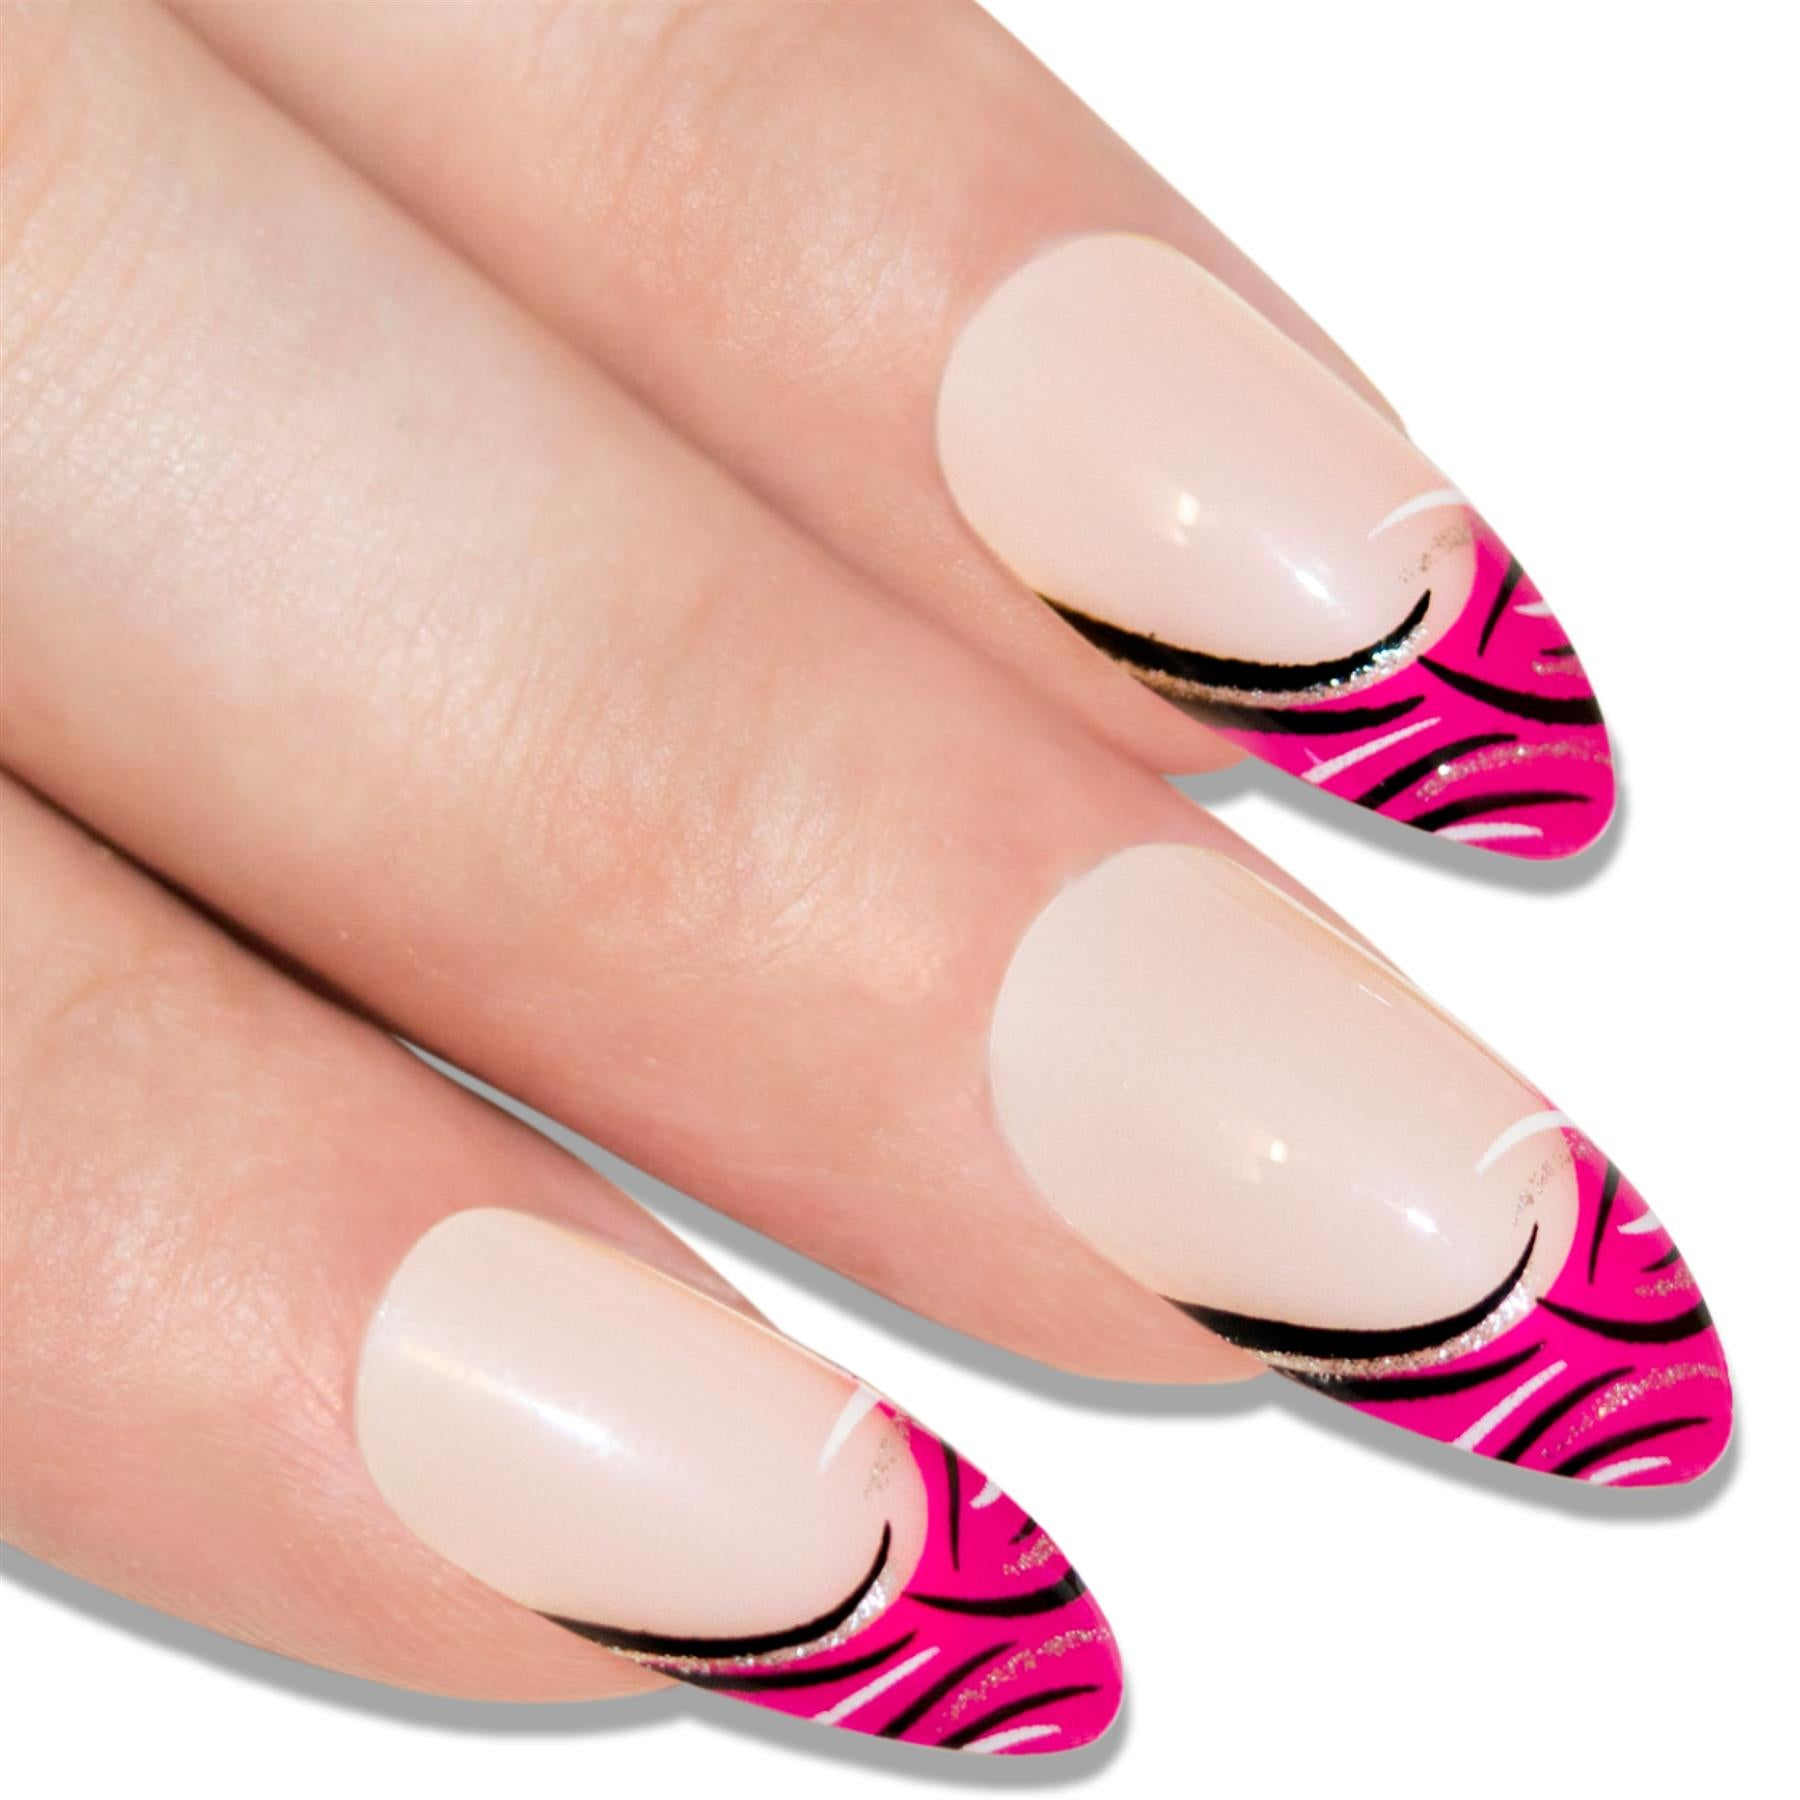 False Nails by Bling Art Glitter Pink 24 Almond Stiletto Long Fake Tips with Glue, Health & Beauty by Bling Art